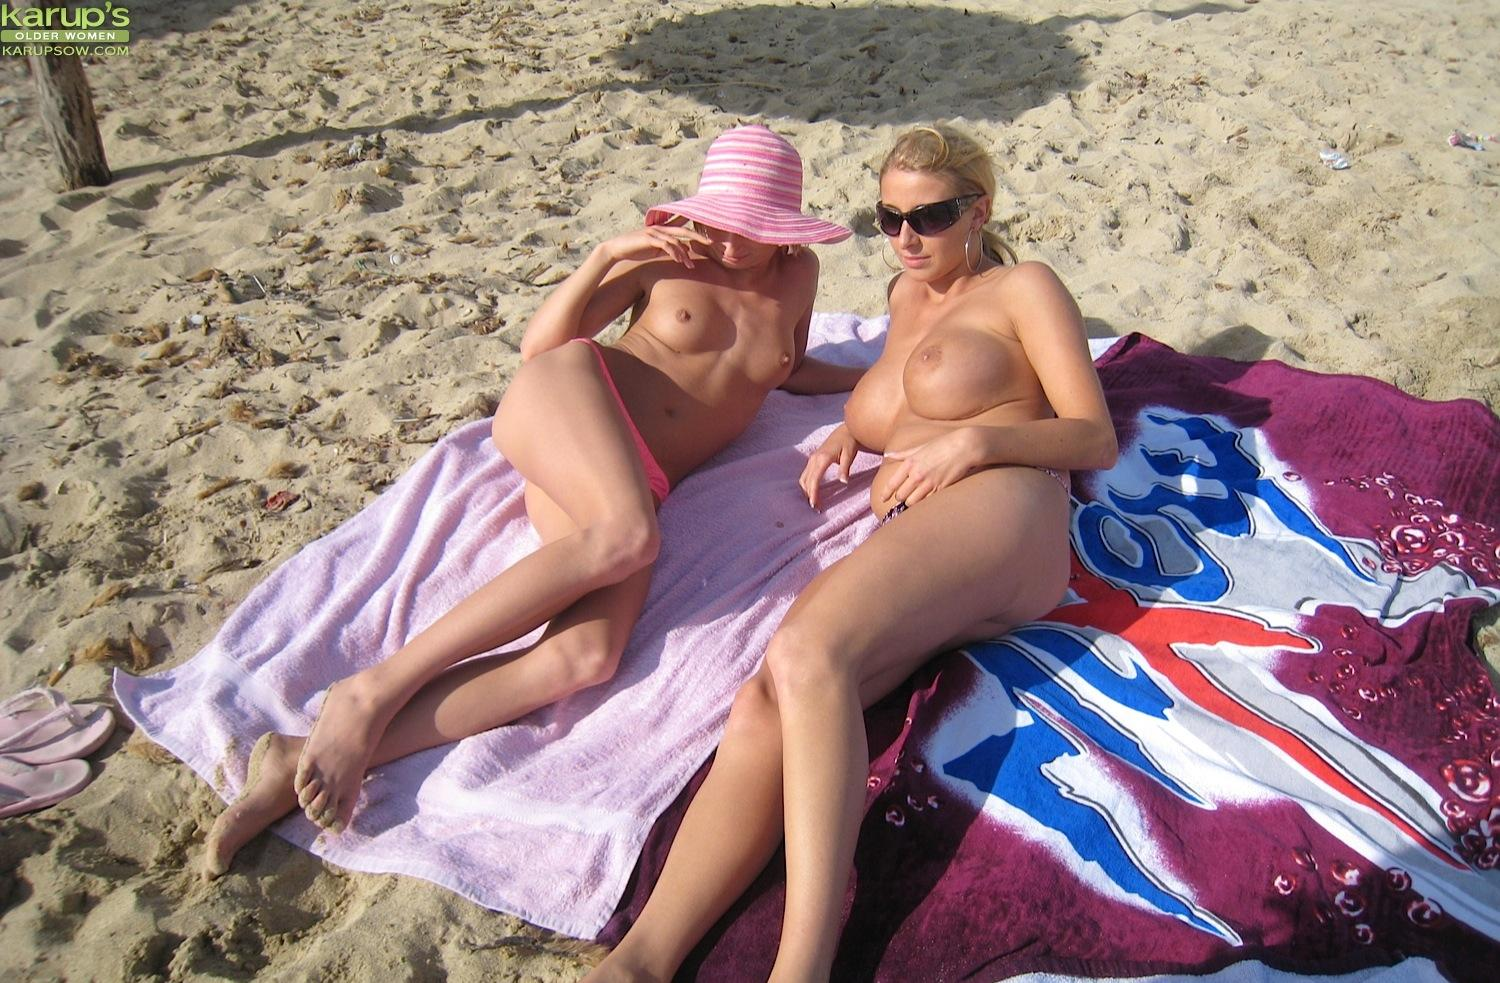 two retired swinging mature ladies have a great comeback in south florida picture 2